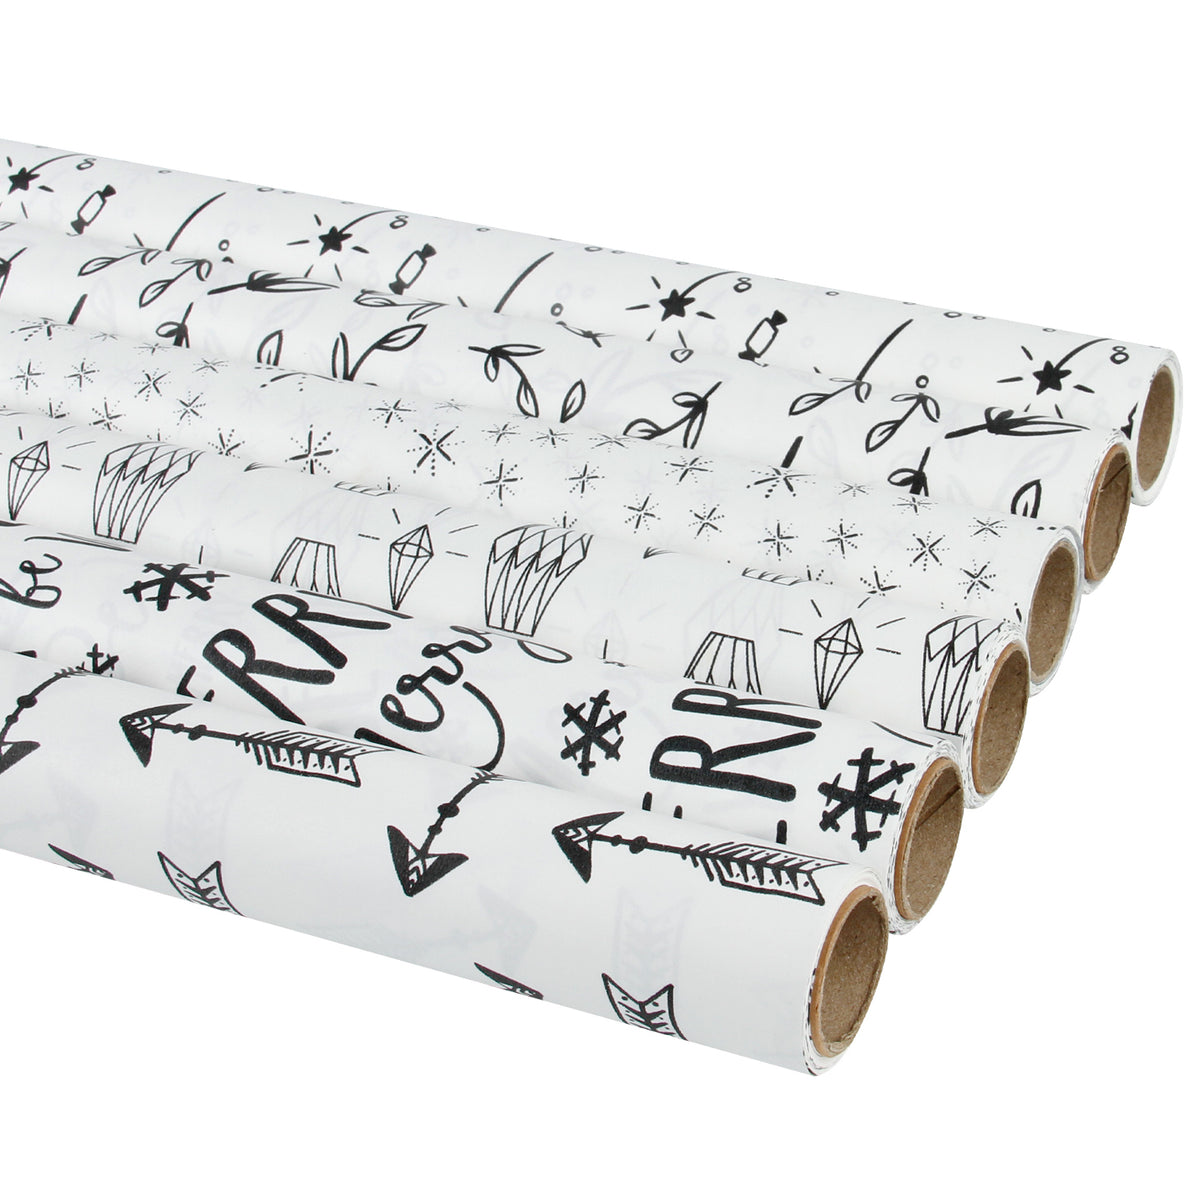 Wrapaholic Gift Wrapping Paper White Black Printed Design